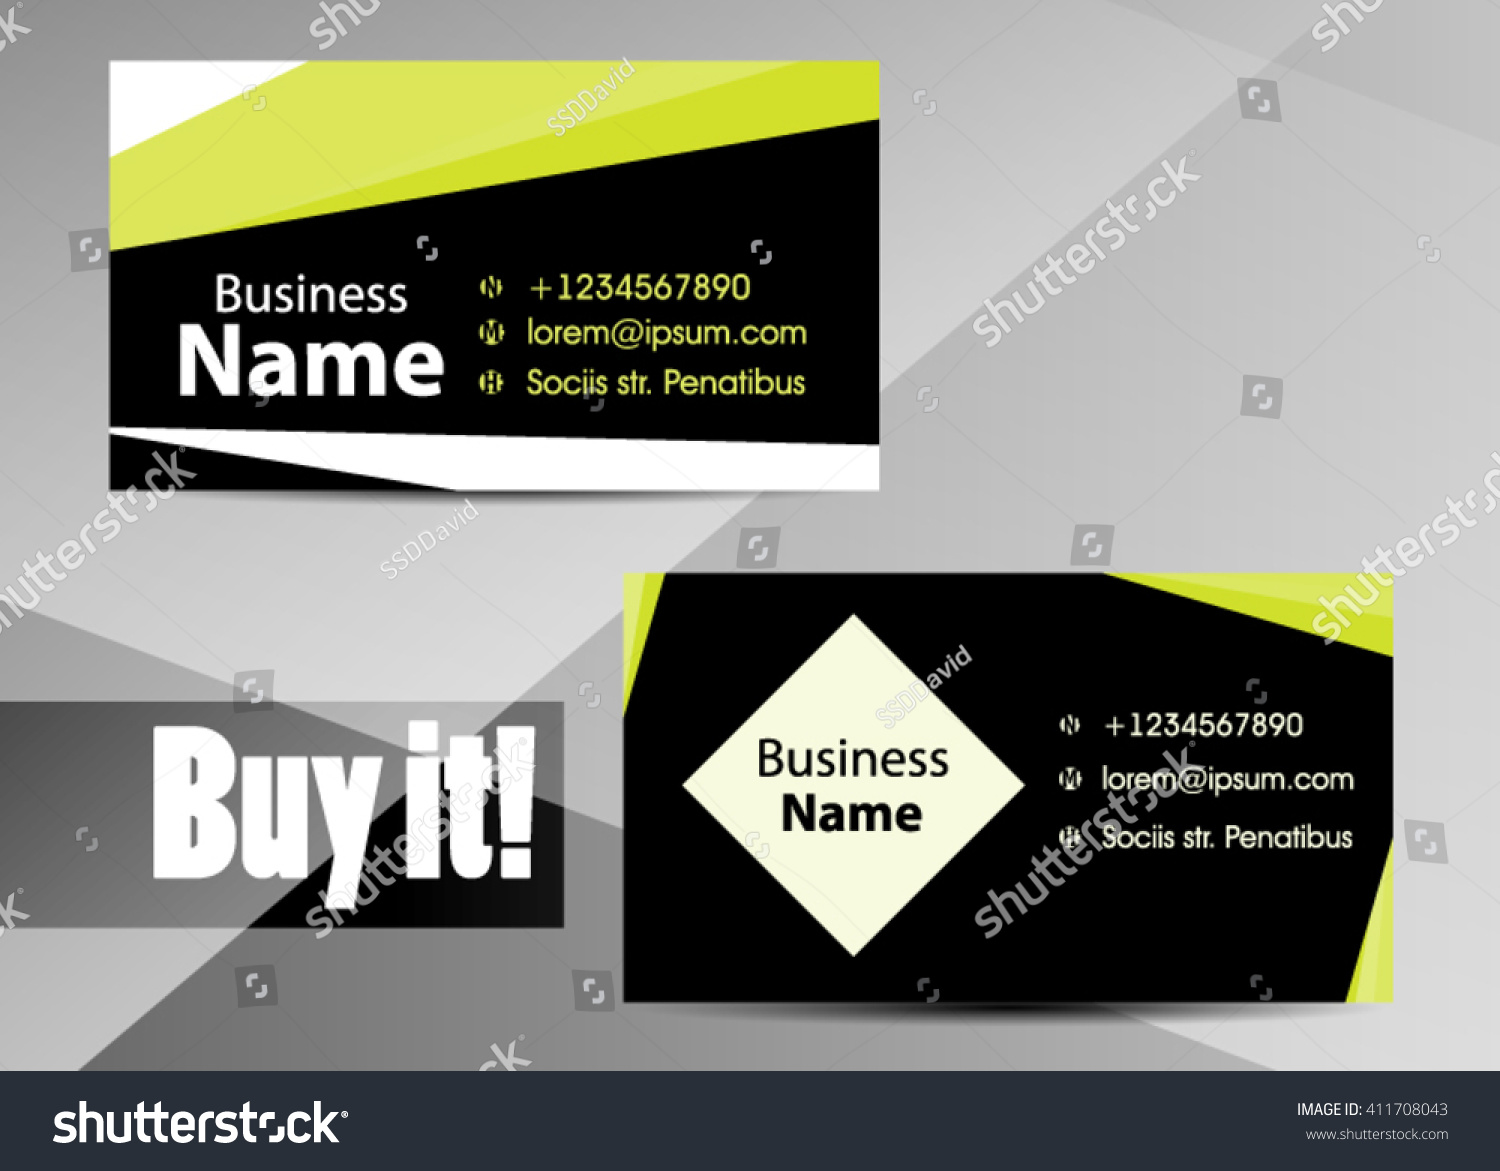 Business card printing in hamilton gallery card design and card zebra business cards hamilton image collections card design and zebra business cards hamilton image collections card reheart Choice Image